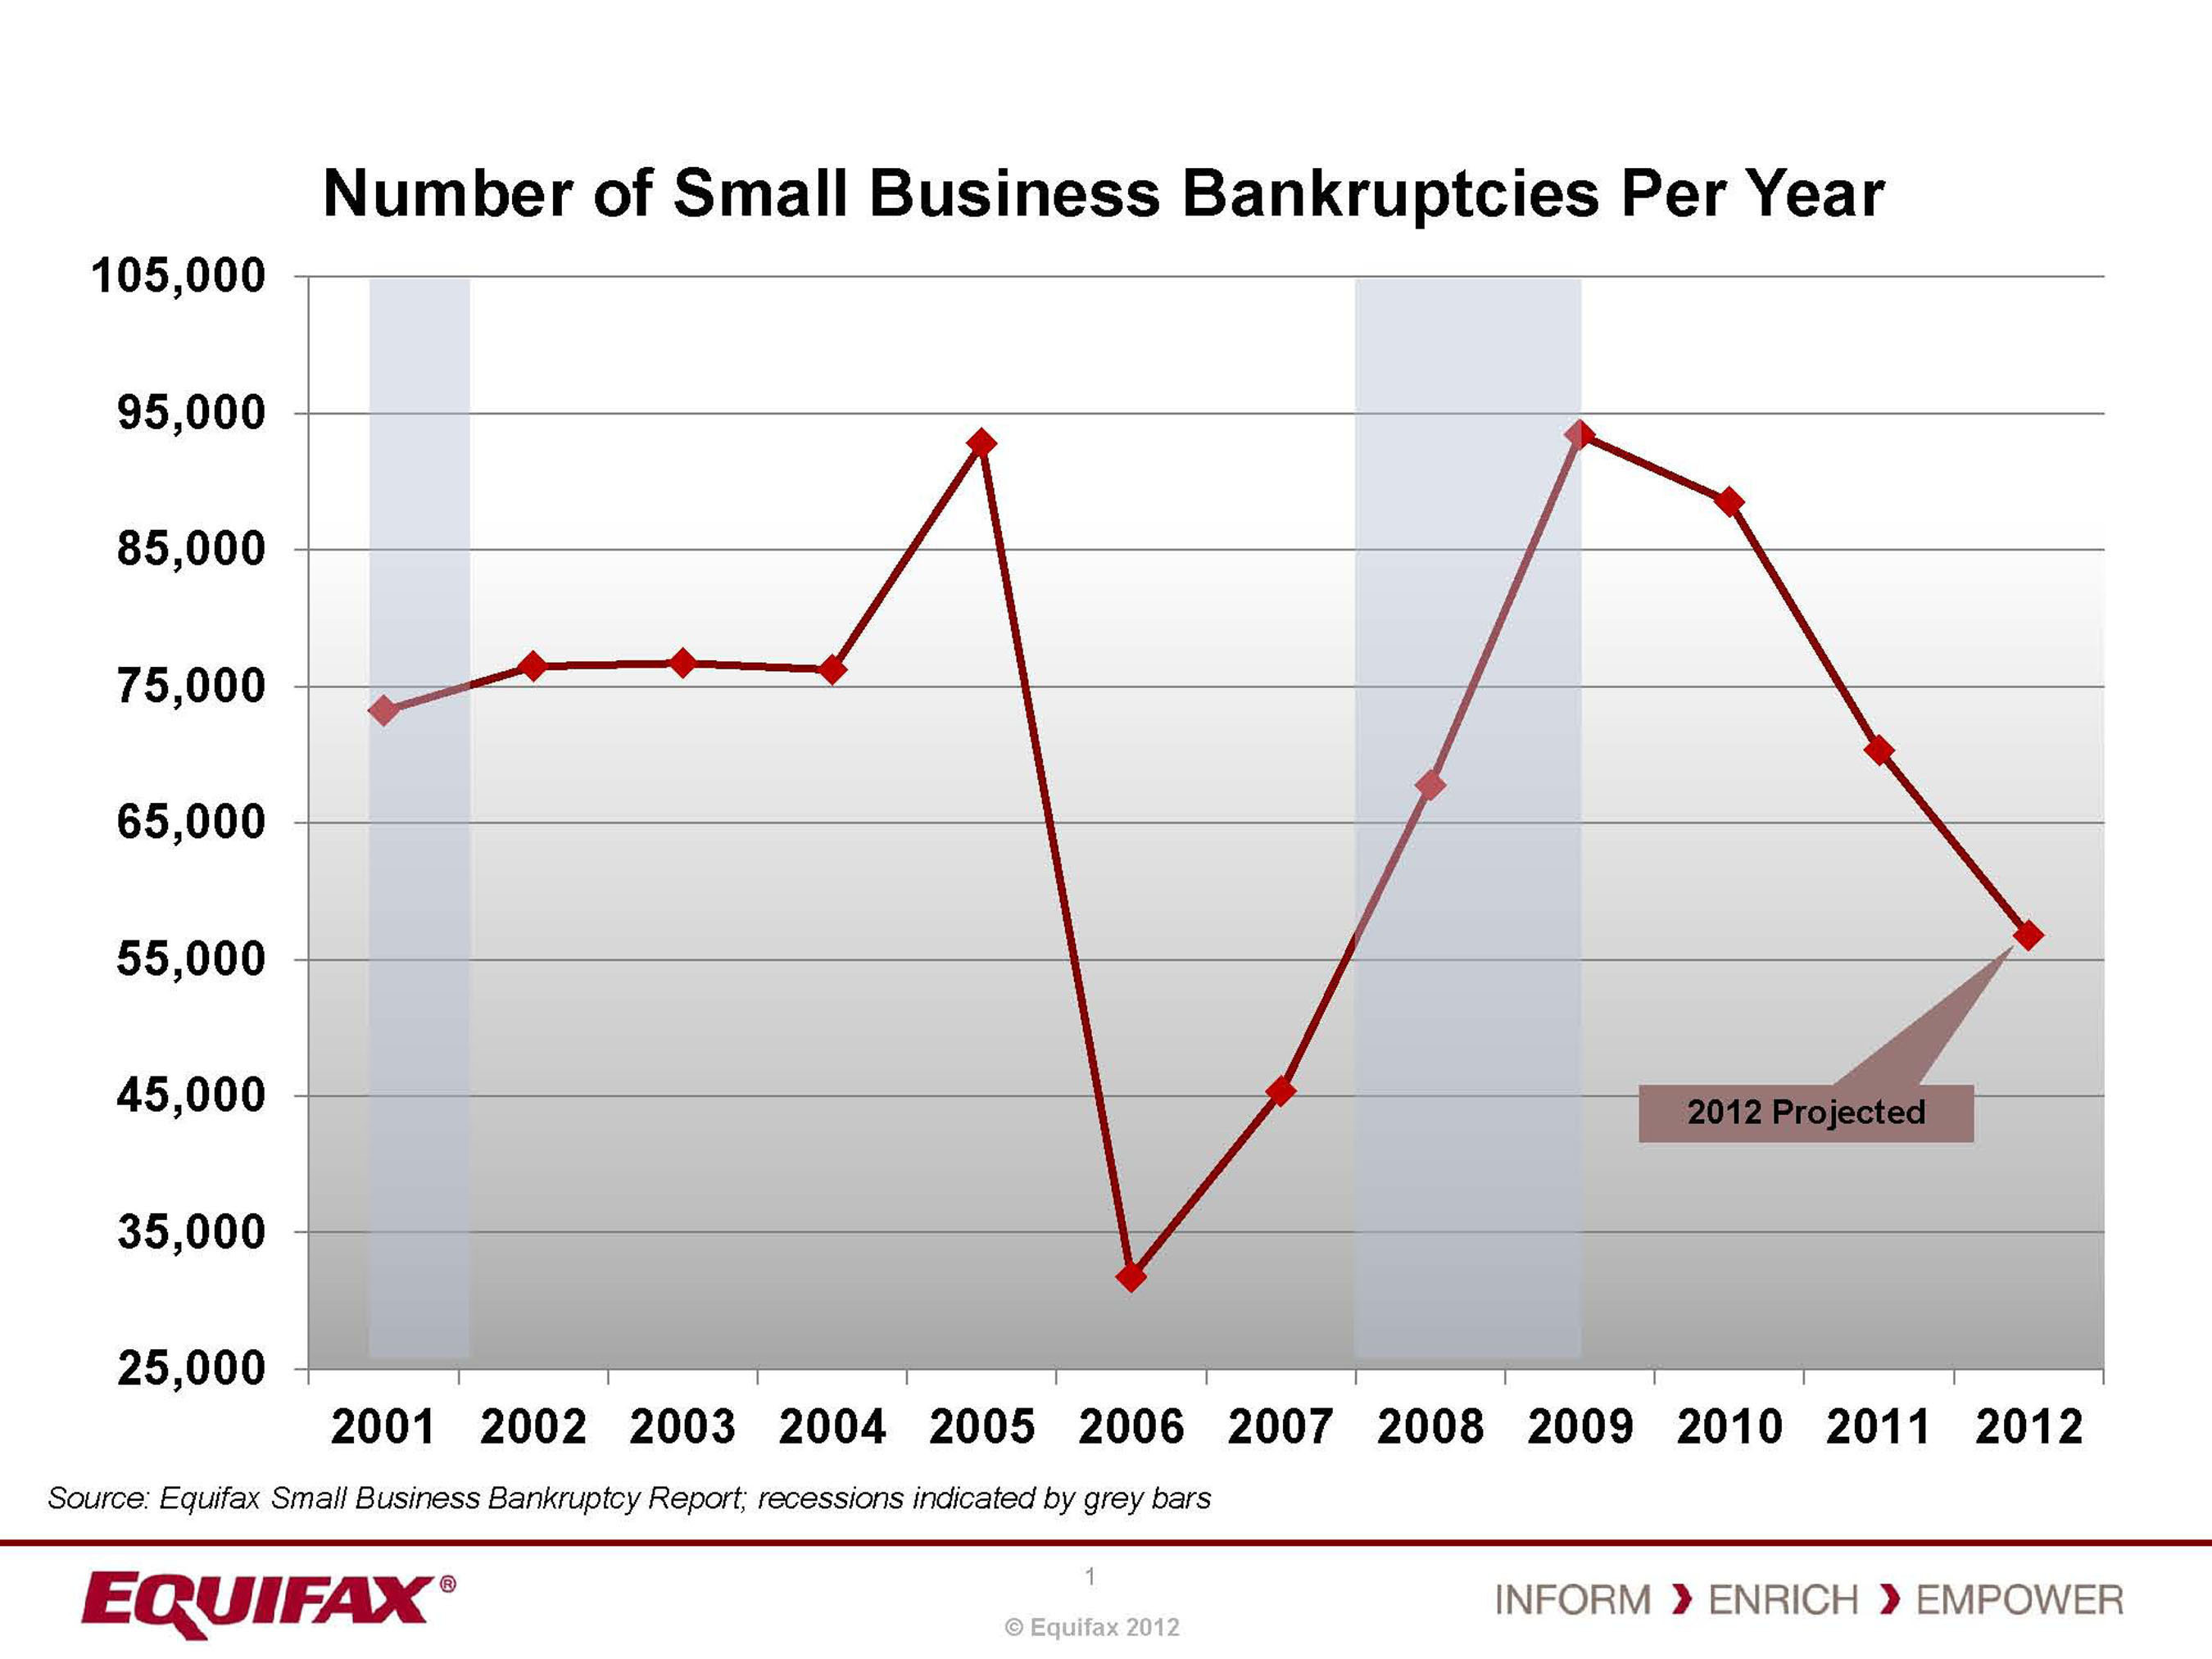 Small Business Bankruptcies Shrink For Fourth Straight Quarter